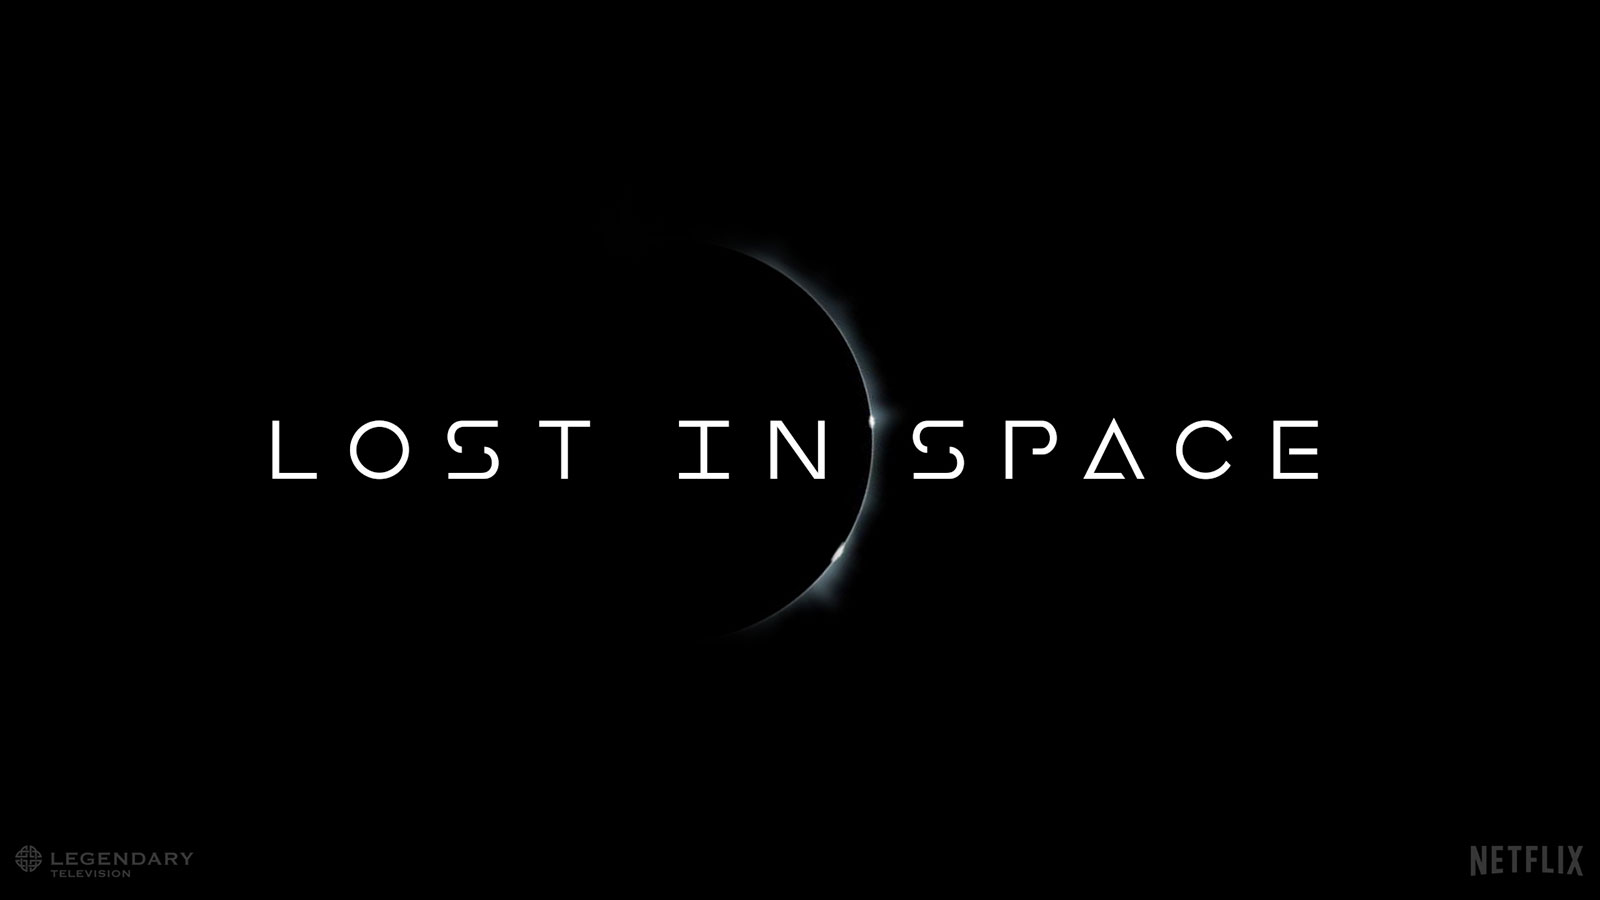 tv_lostinspace_featureimage_desktop_1600x900